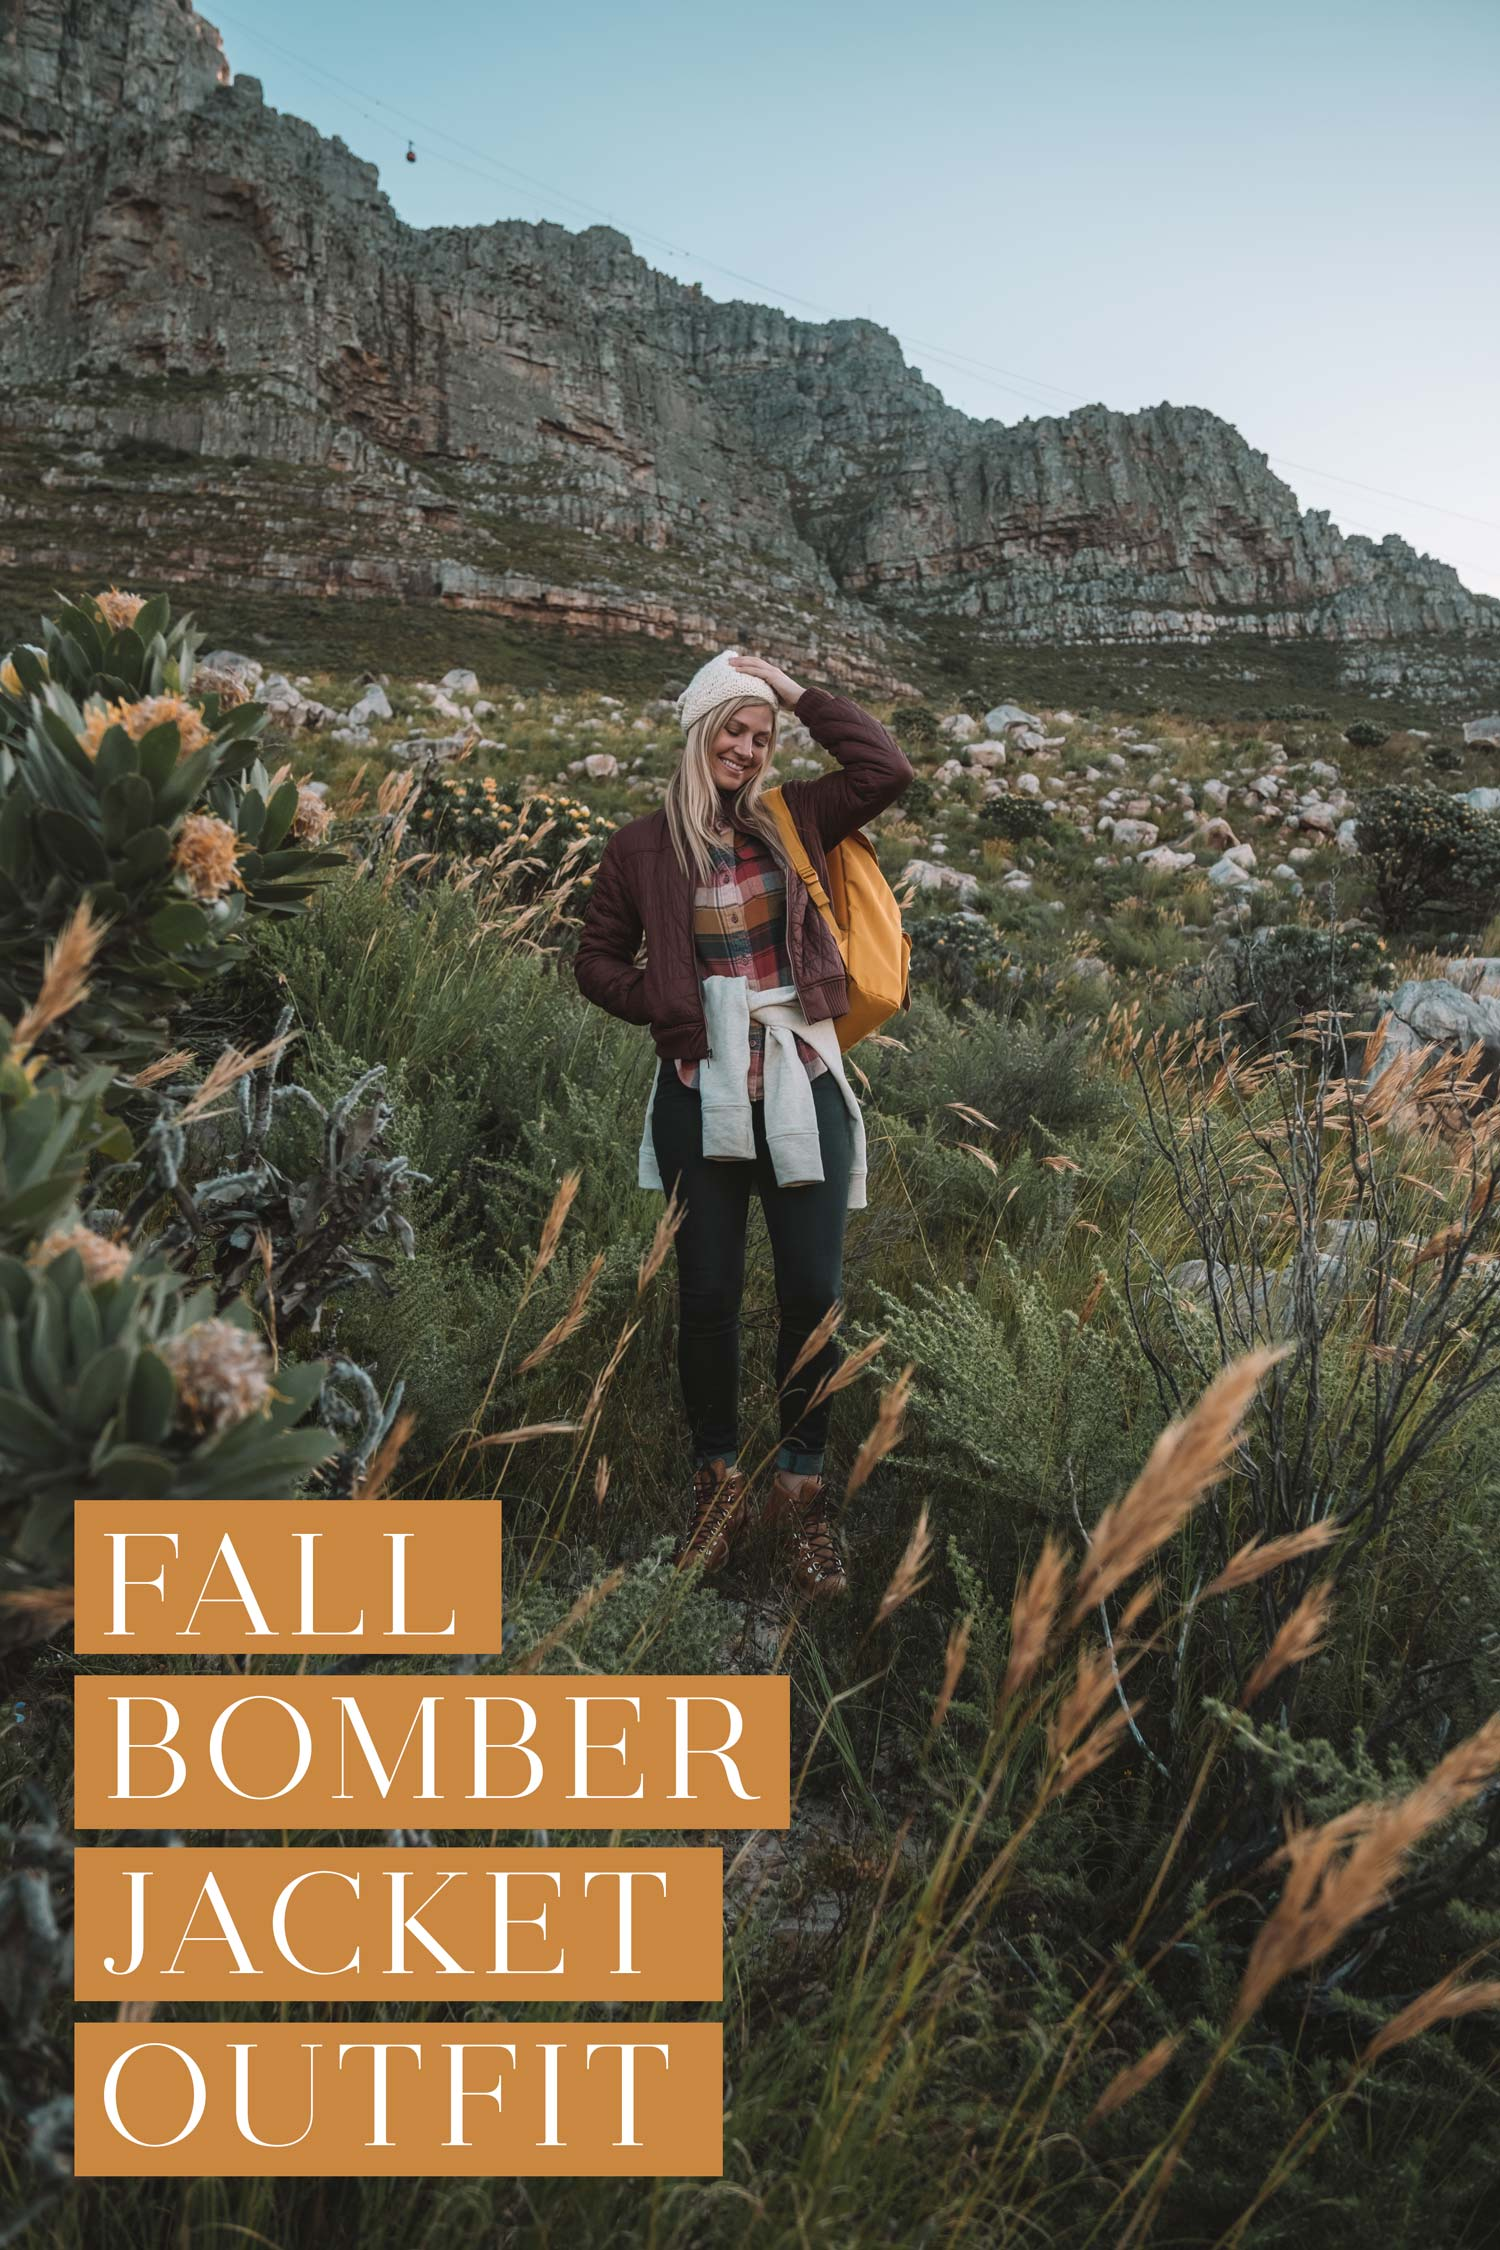 Fall Bomber Jacket Outfit from Backcountry